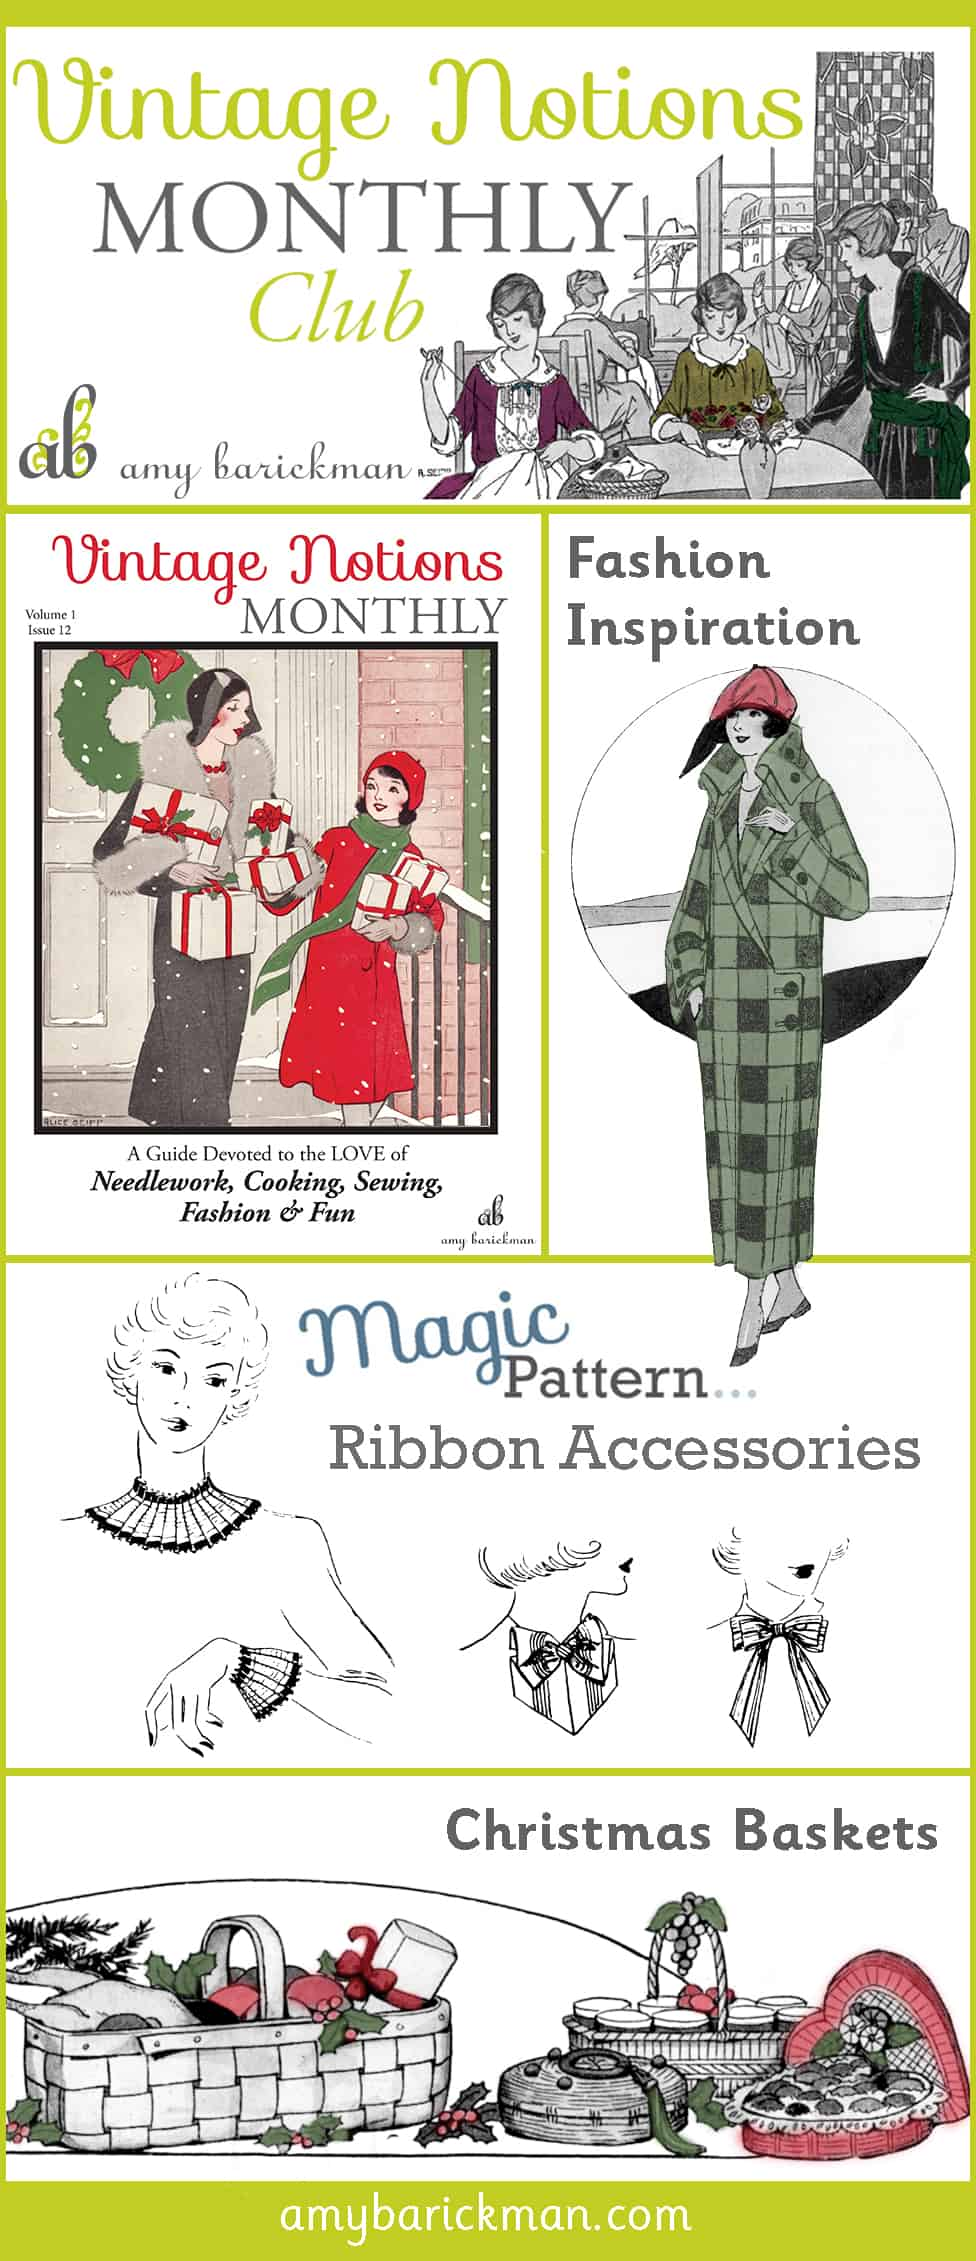 Author Amy Barickman's Vintage Notions Monthly is a delightful peek into the past!